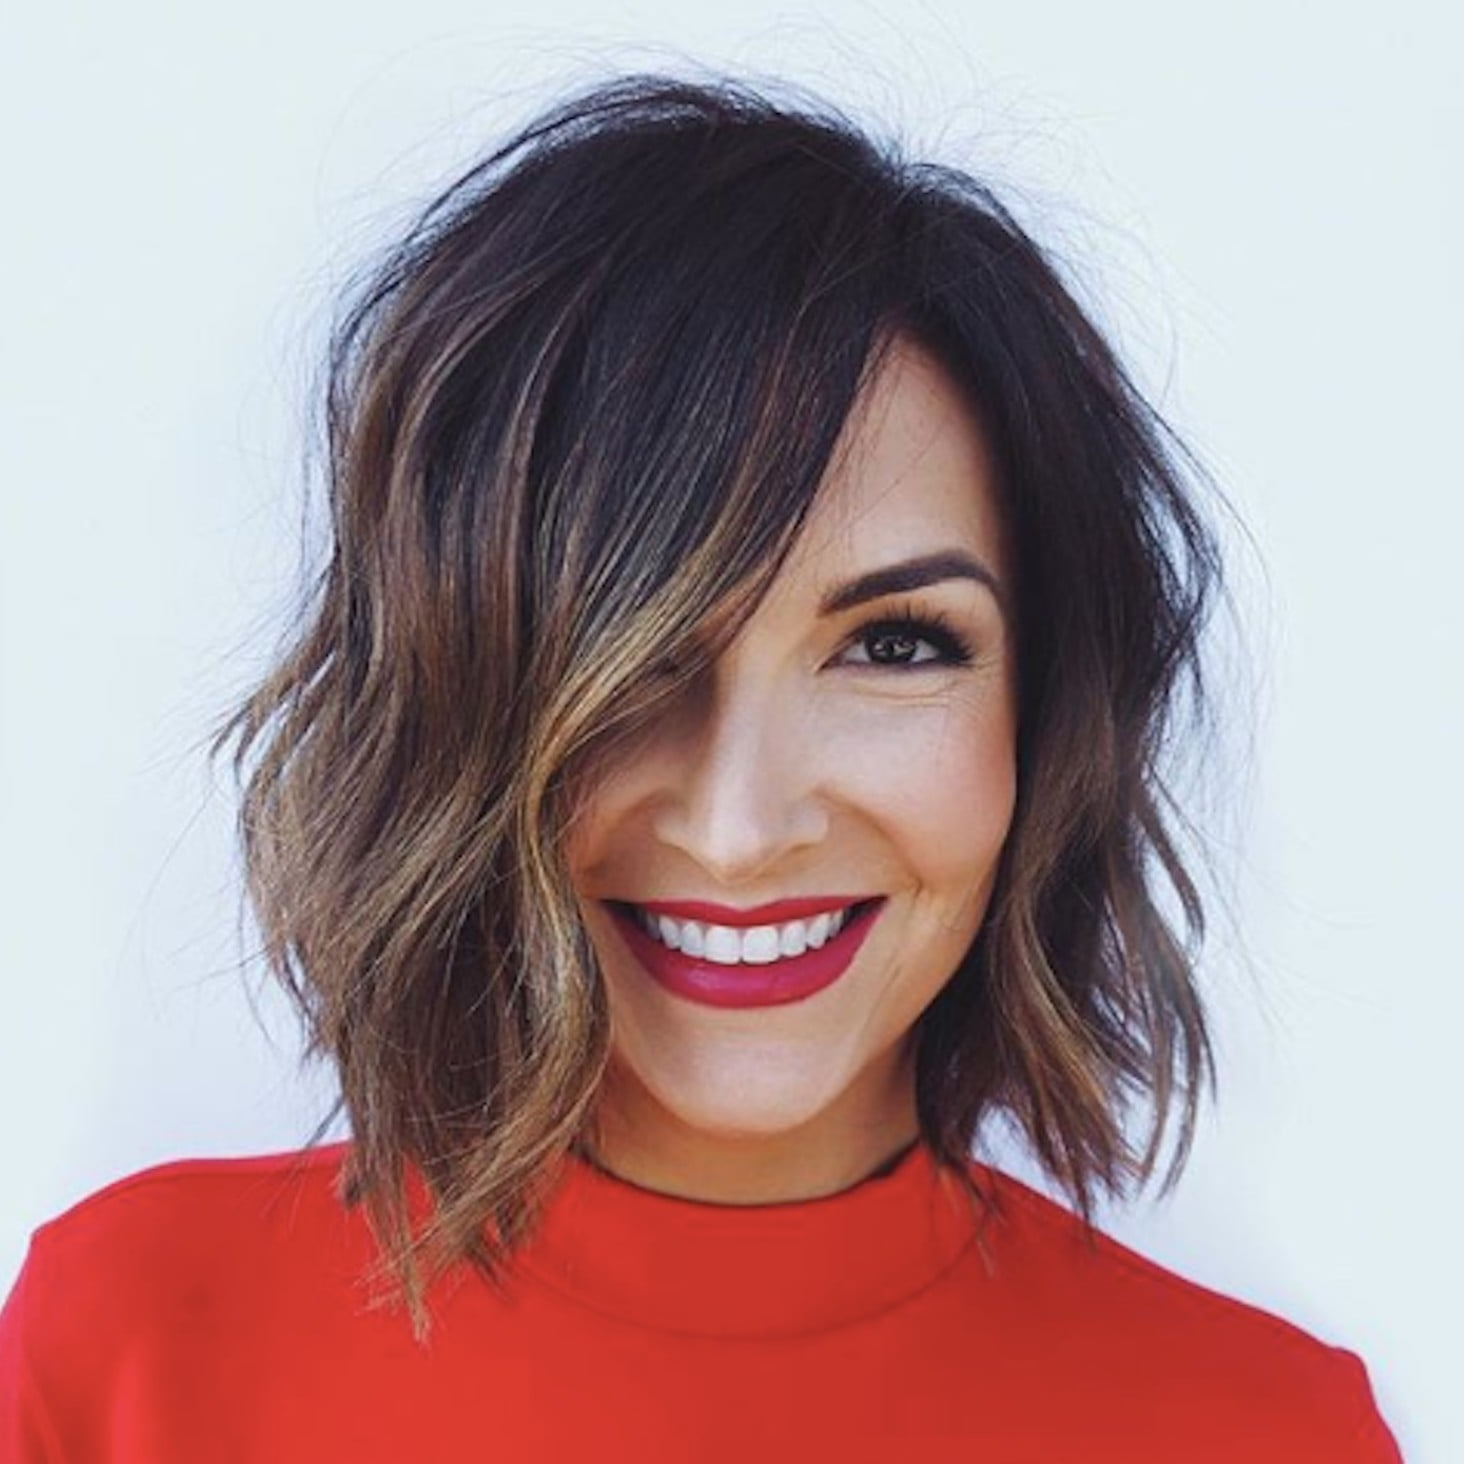 50 Best Bob Haircut Pictures 2019 | Popsugar Beauty With Trendy And Sleek Bob Haircuts (Gallery 20 of 20)